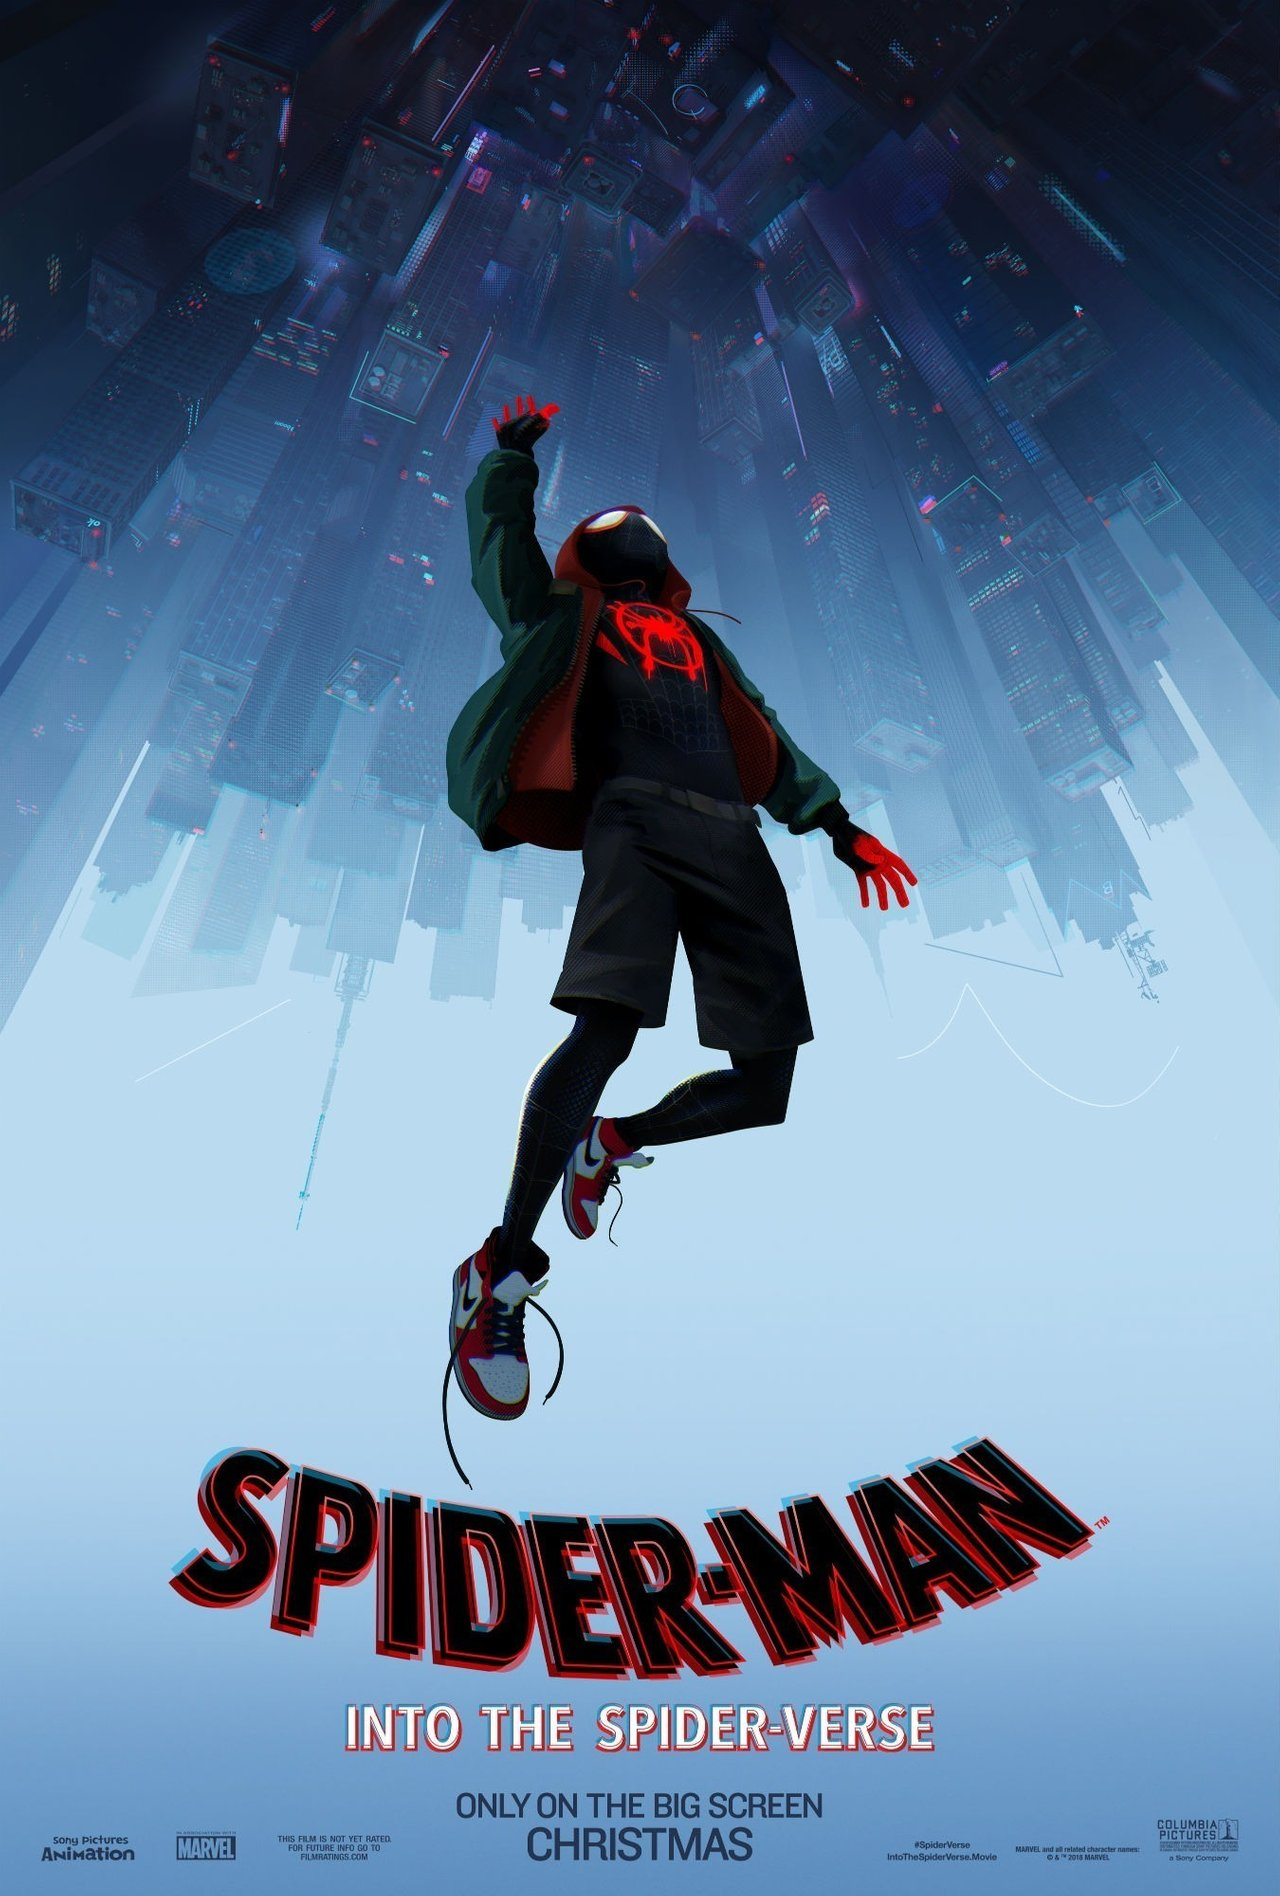 spider-man-into-the-spider-verse-dom-asm-online-1sht-6072x9000-05-aoj-rgb-1532383689774_1280w